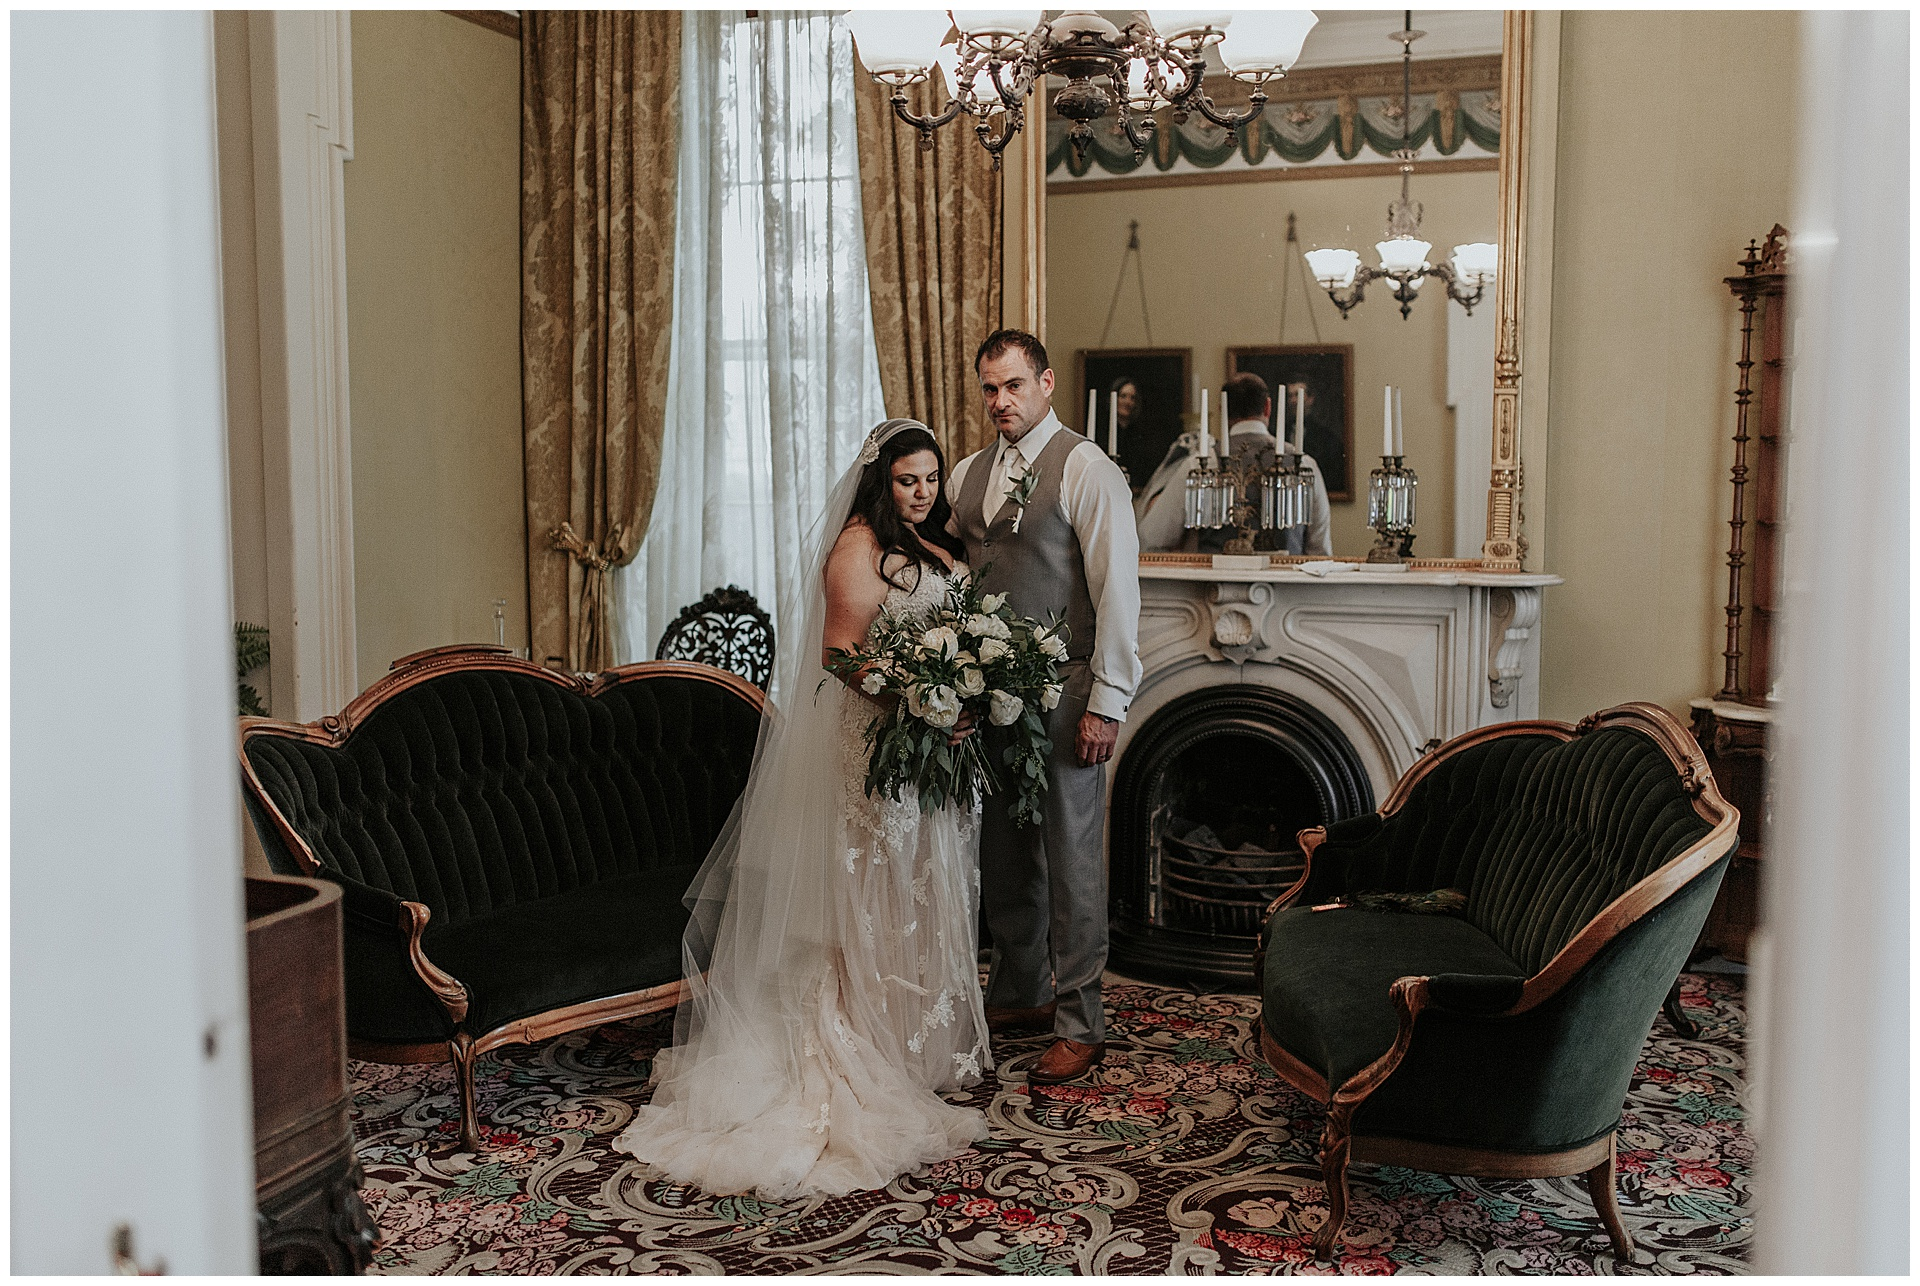 kelton house wedding columbus ohio_mia dimare photo48.jpg